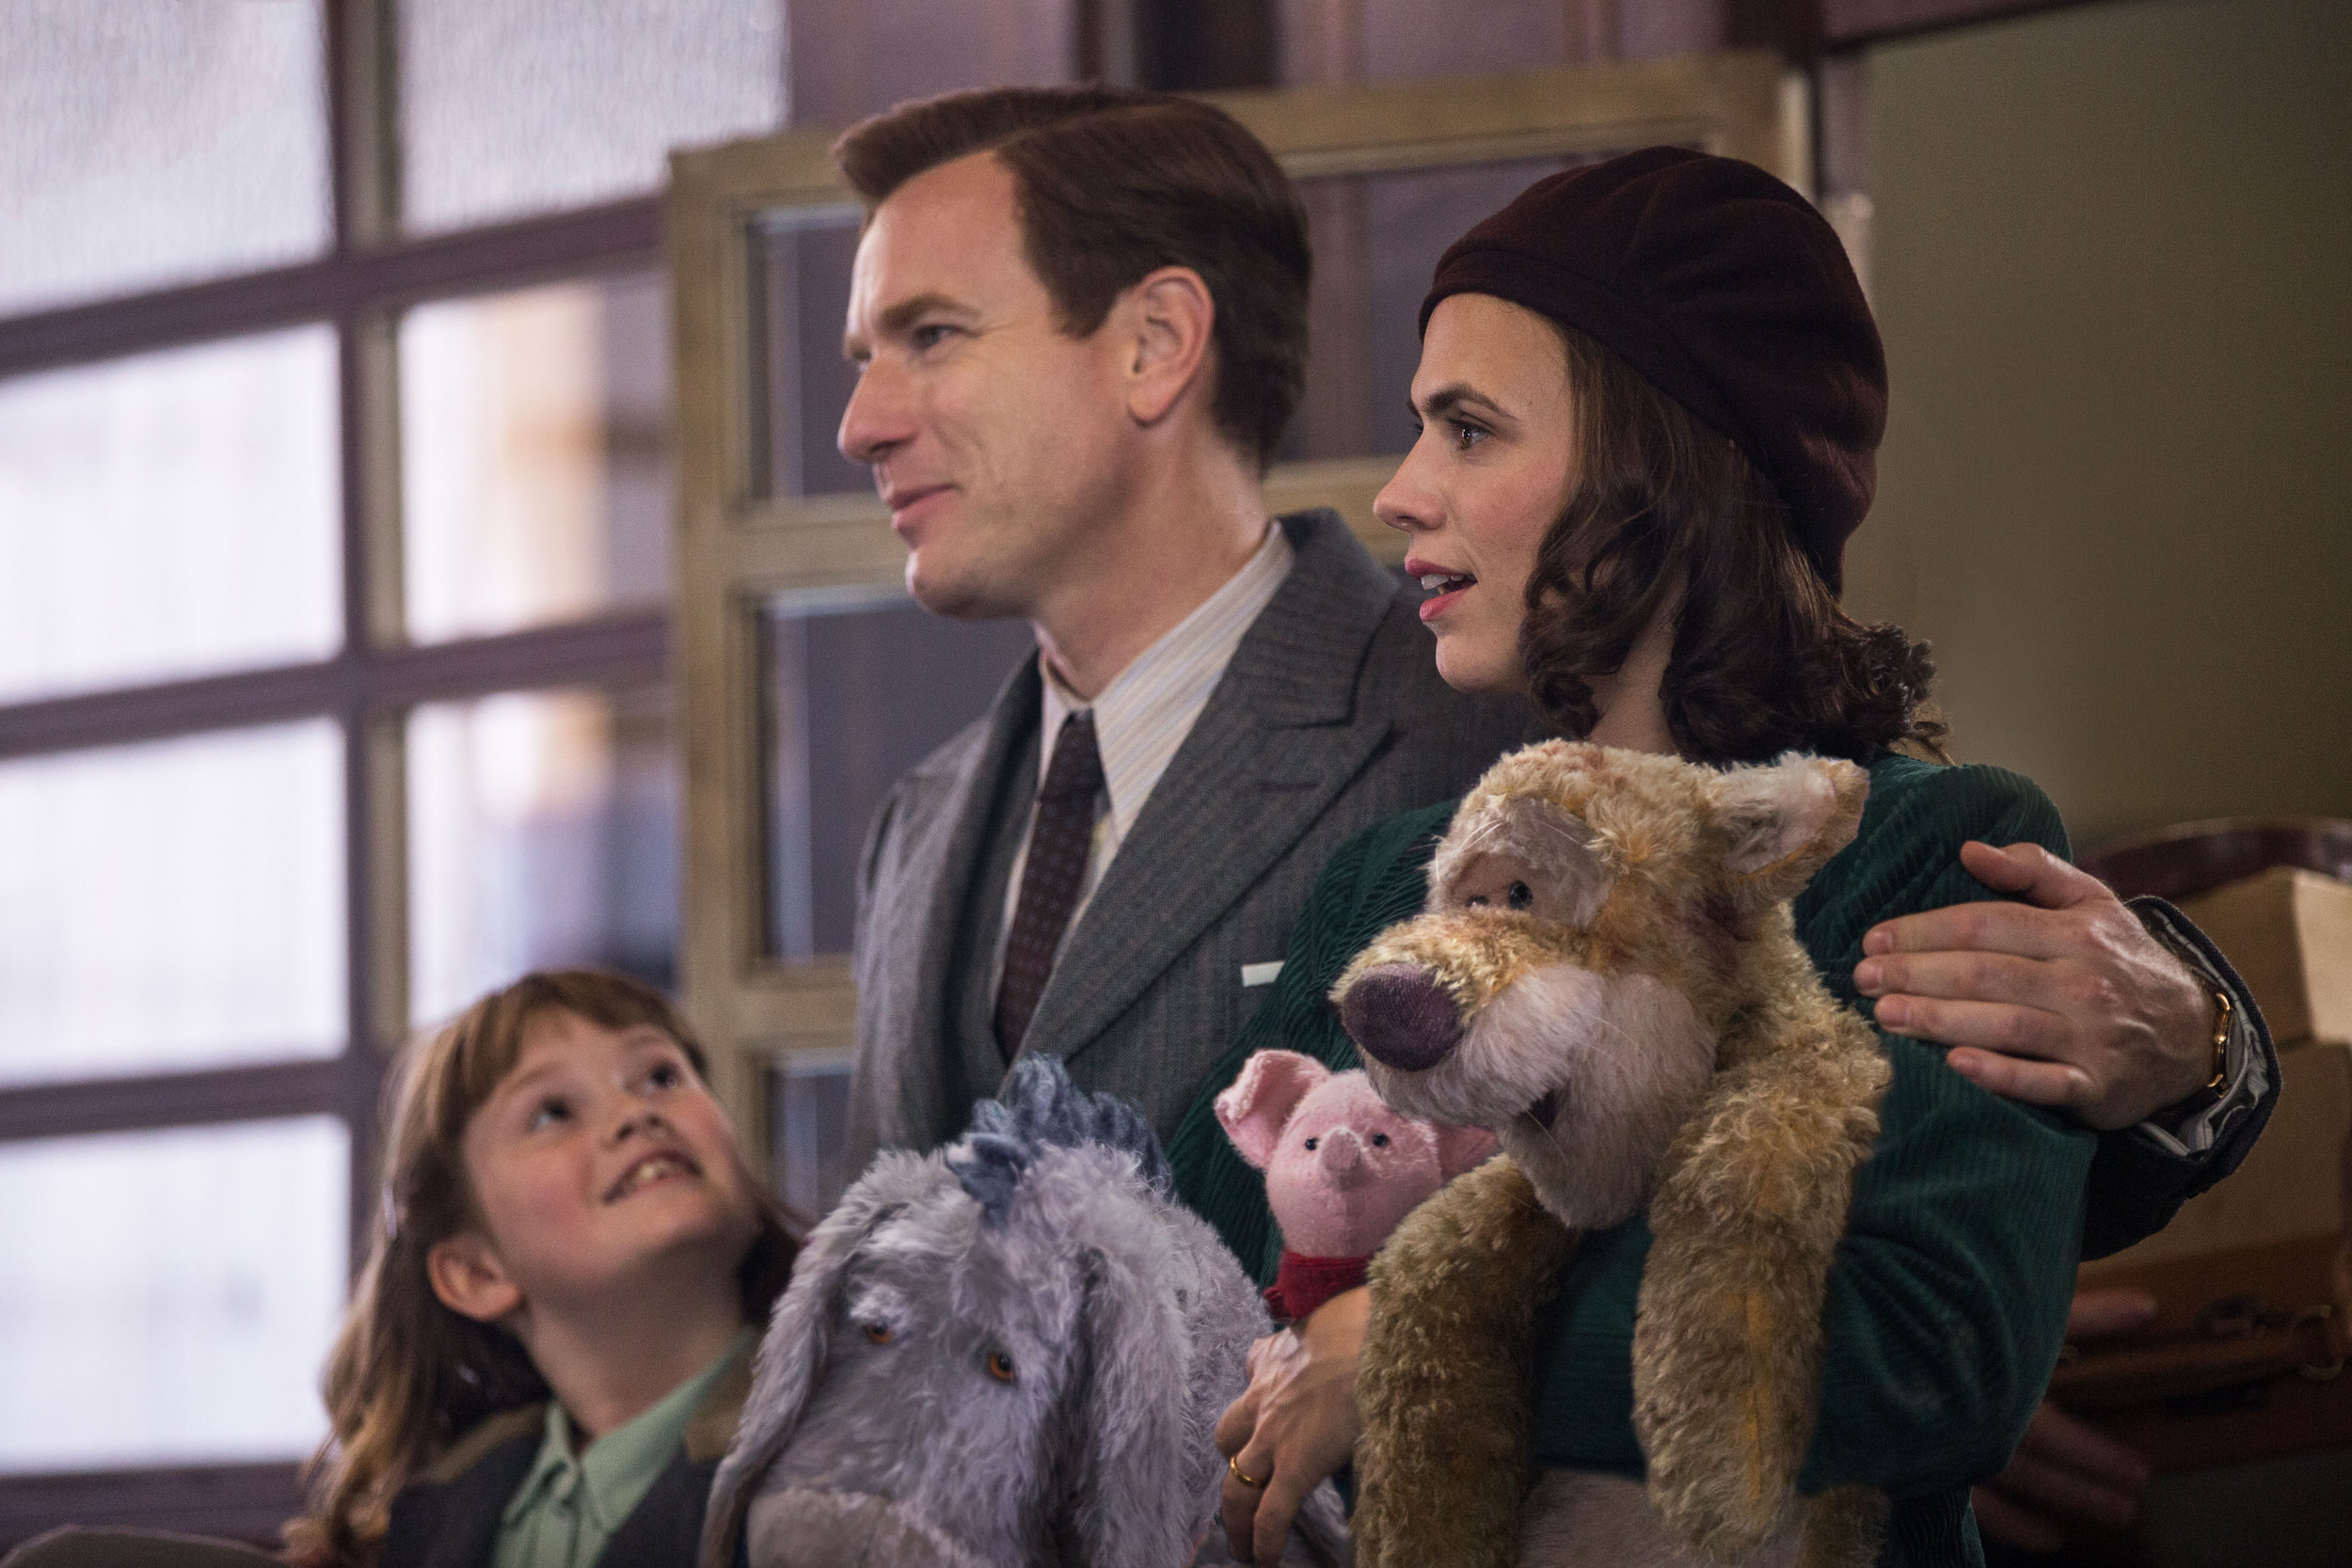 Hayley Atwell as Evelyn in 'ChristopherRobin' out August 17. CREDIT: Disney